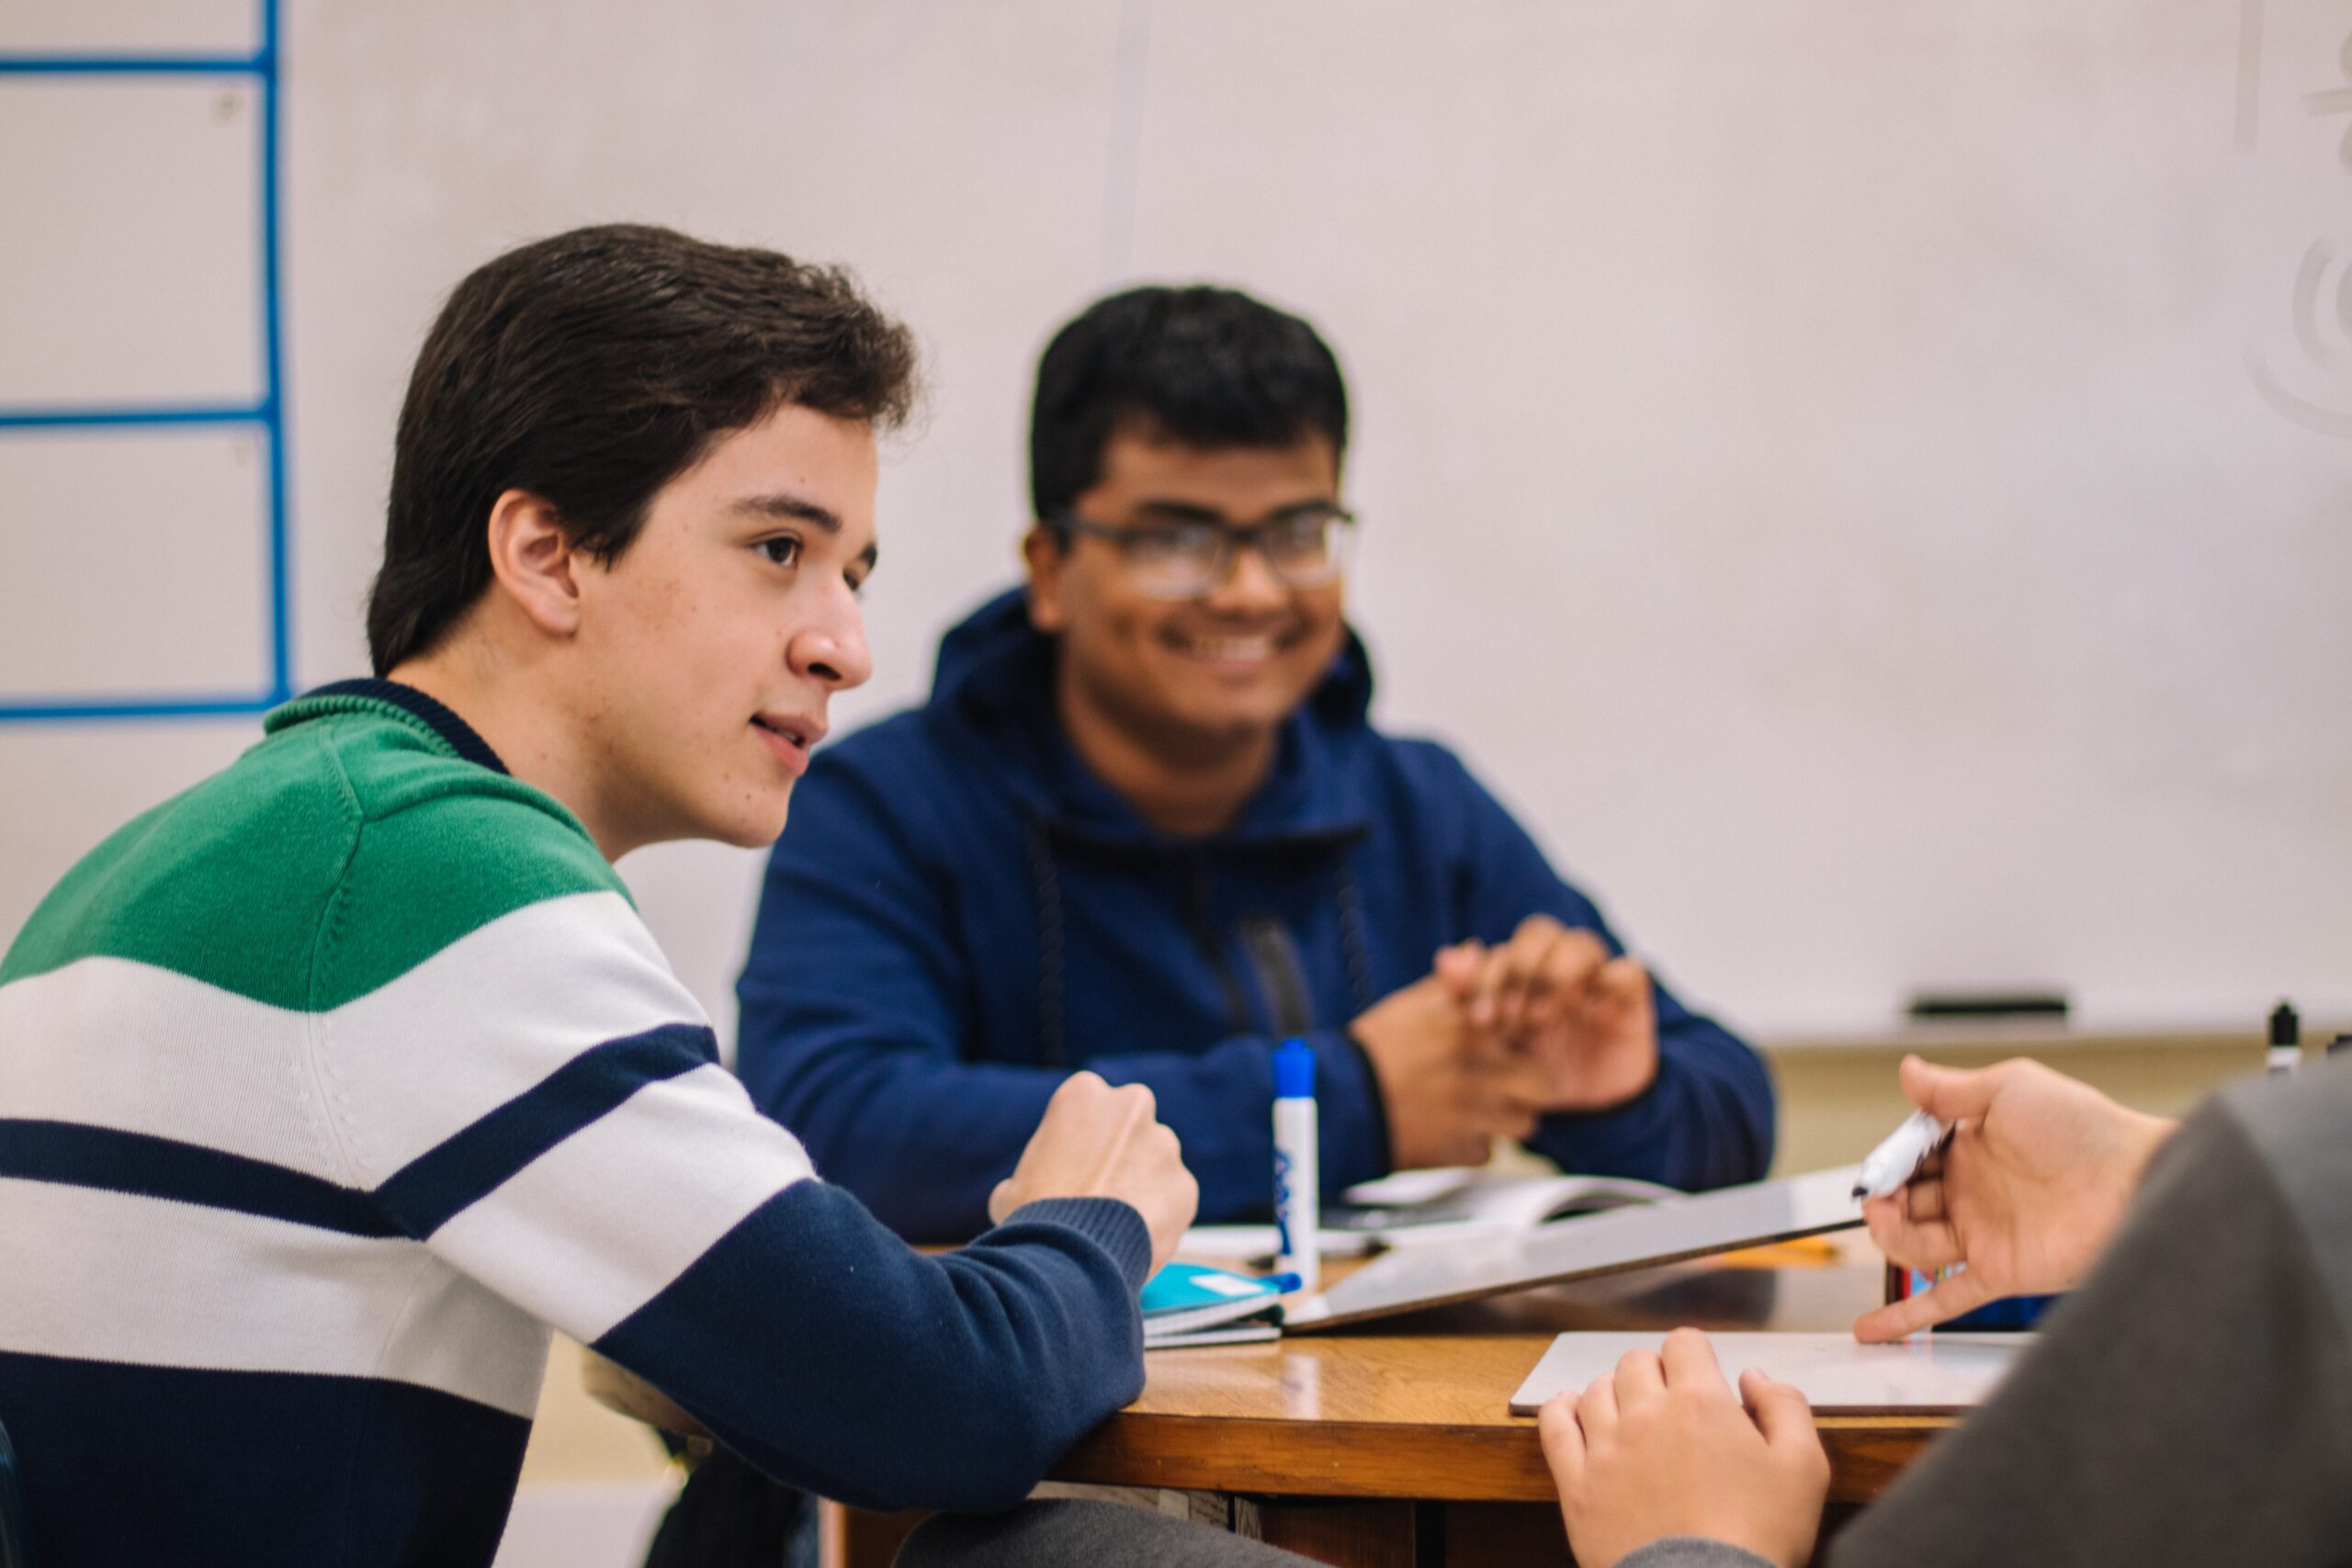 11Two young male teens, sitting at a desk smiling and looking at a third person not pictured